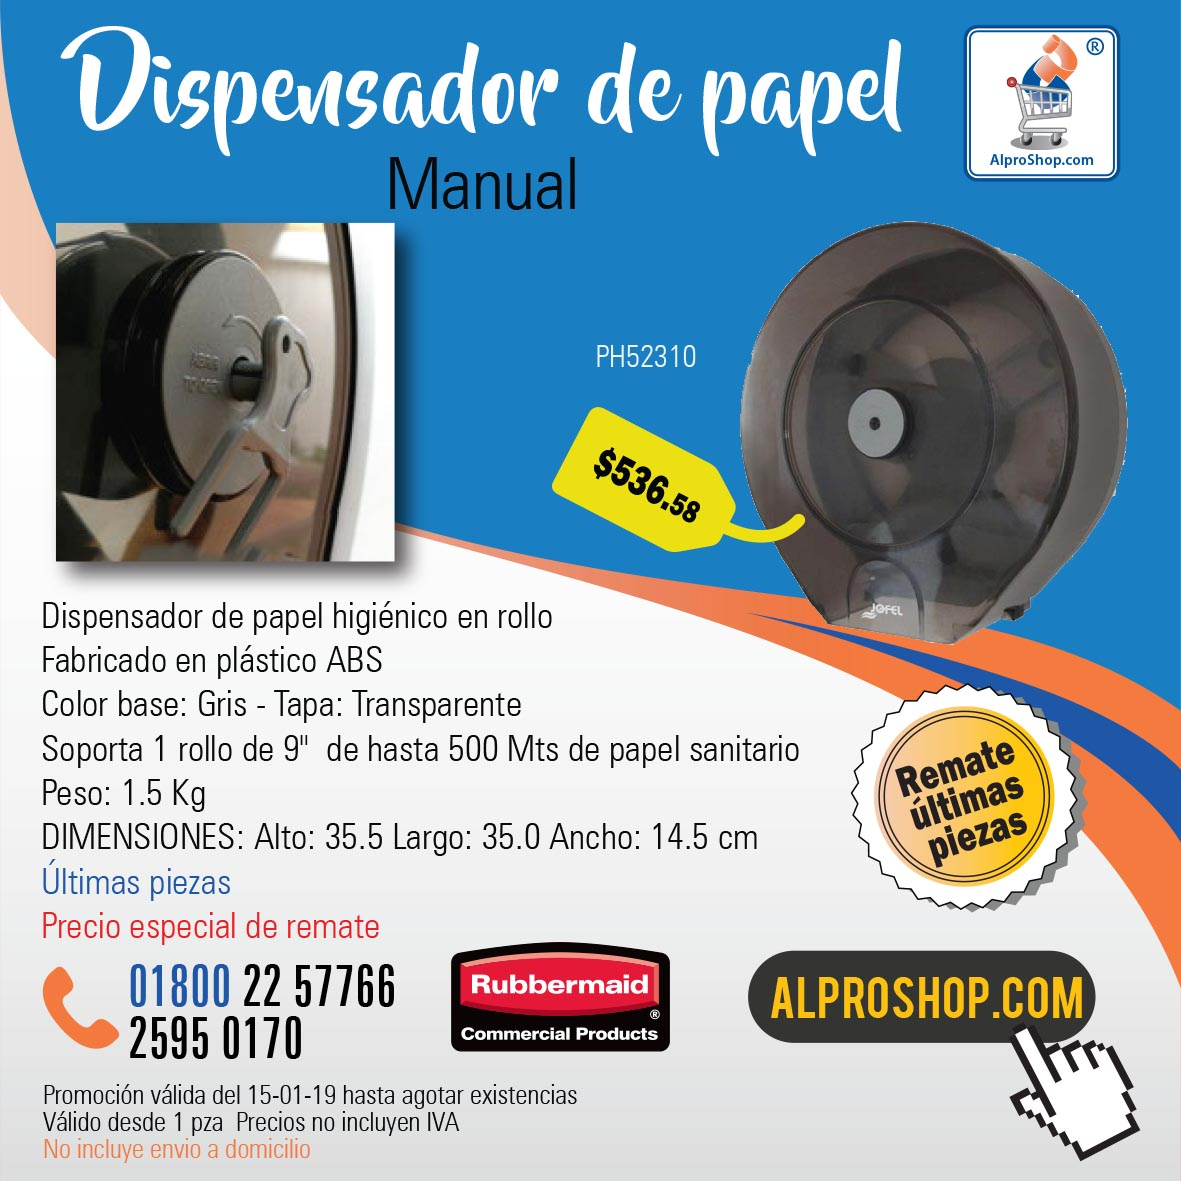 dispensador-de-papel.jpg